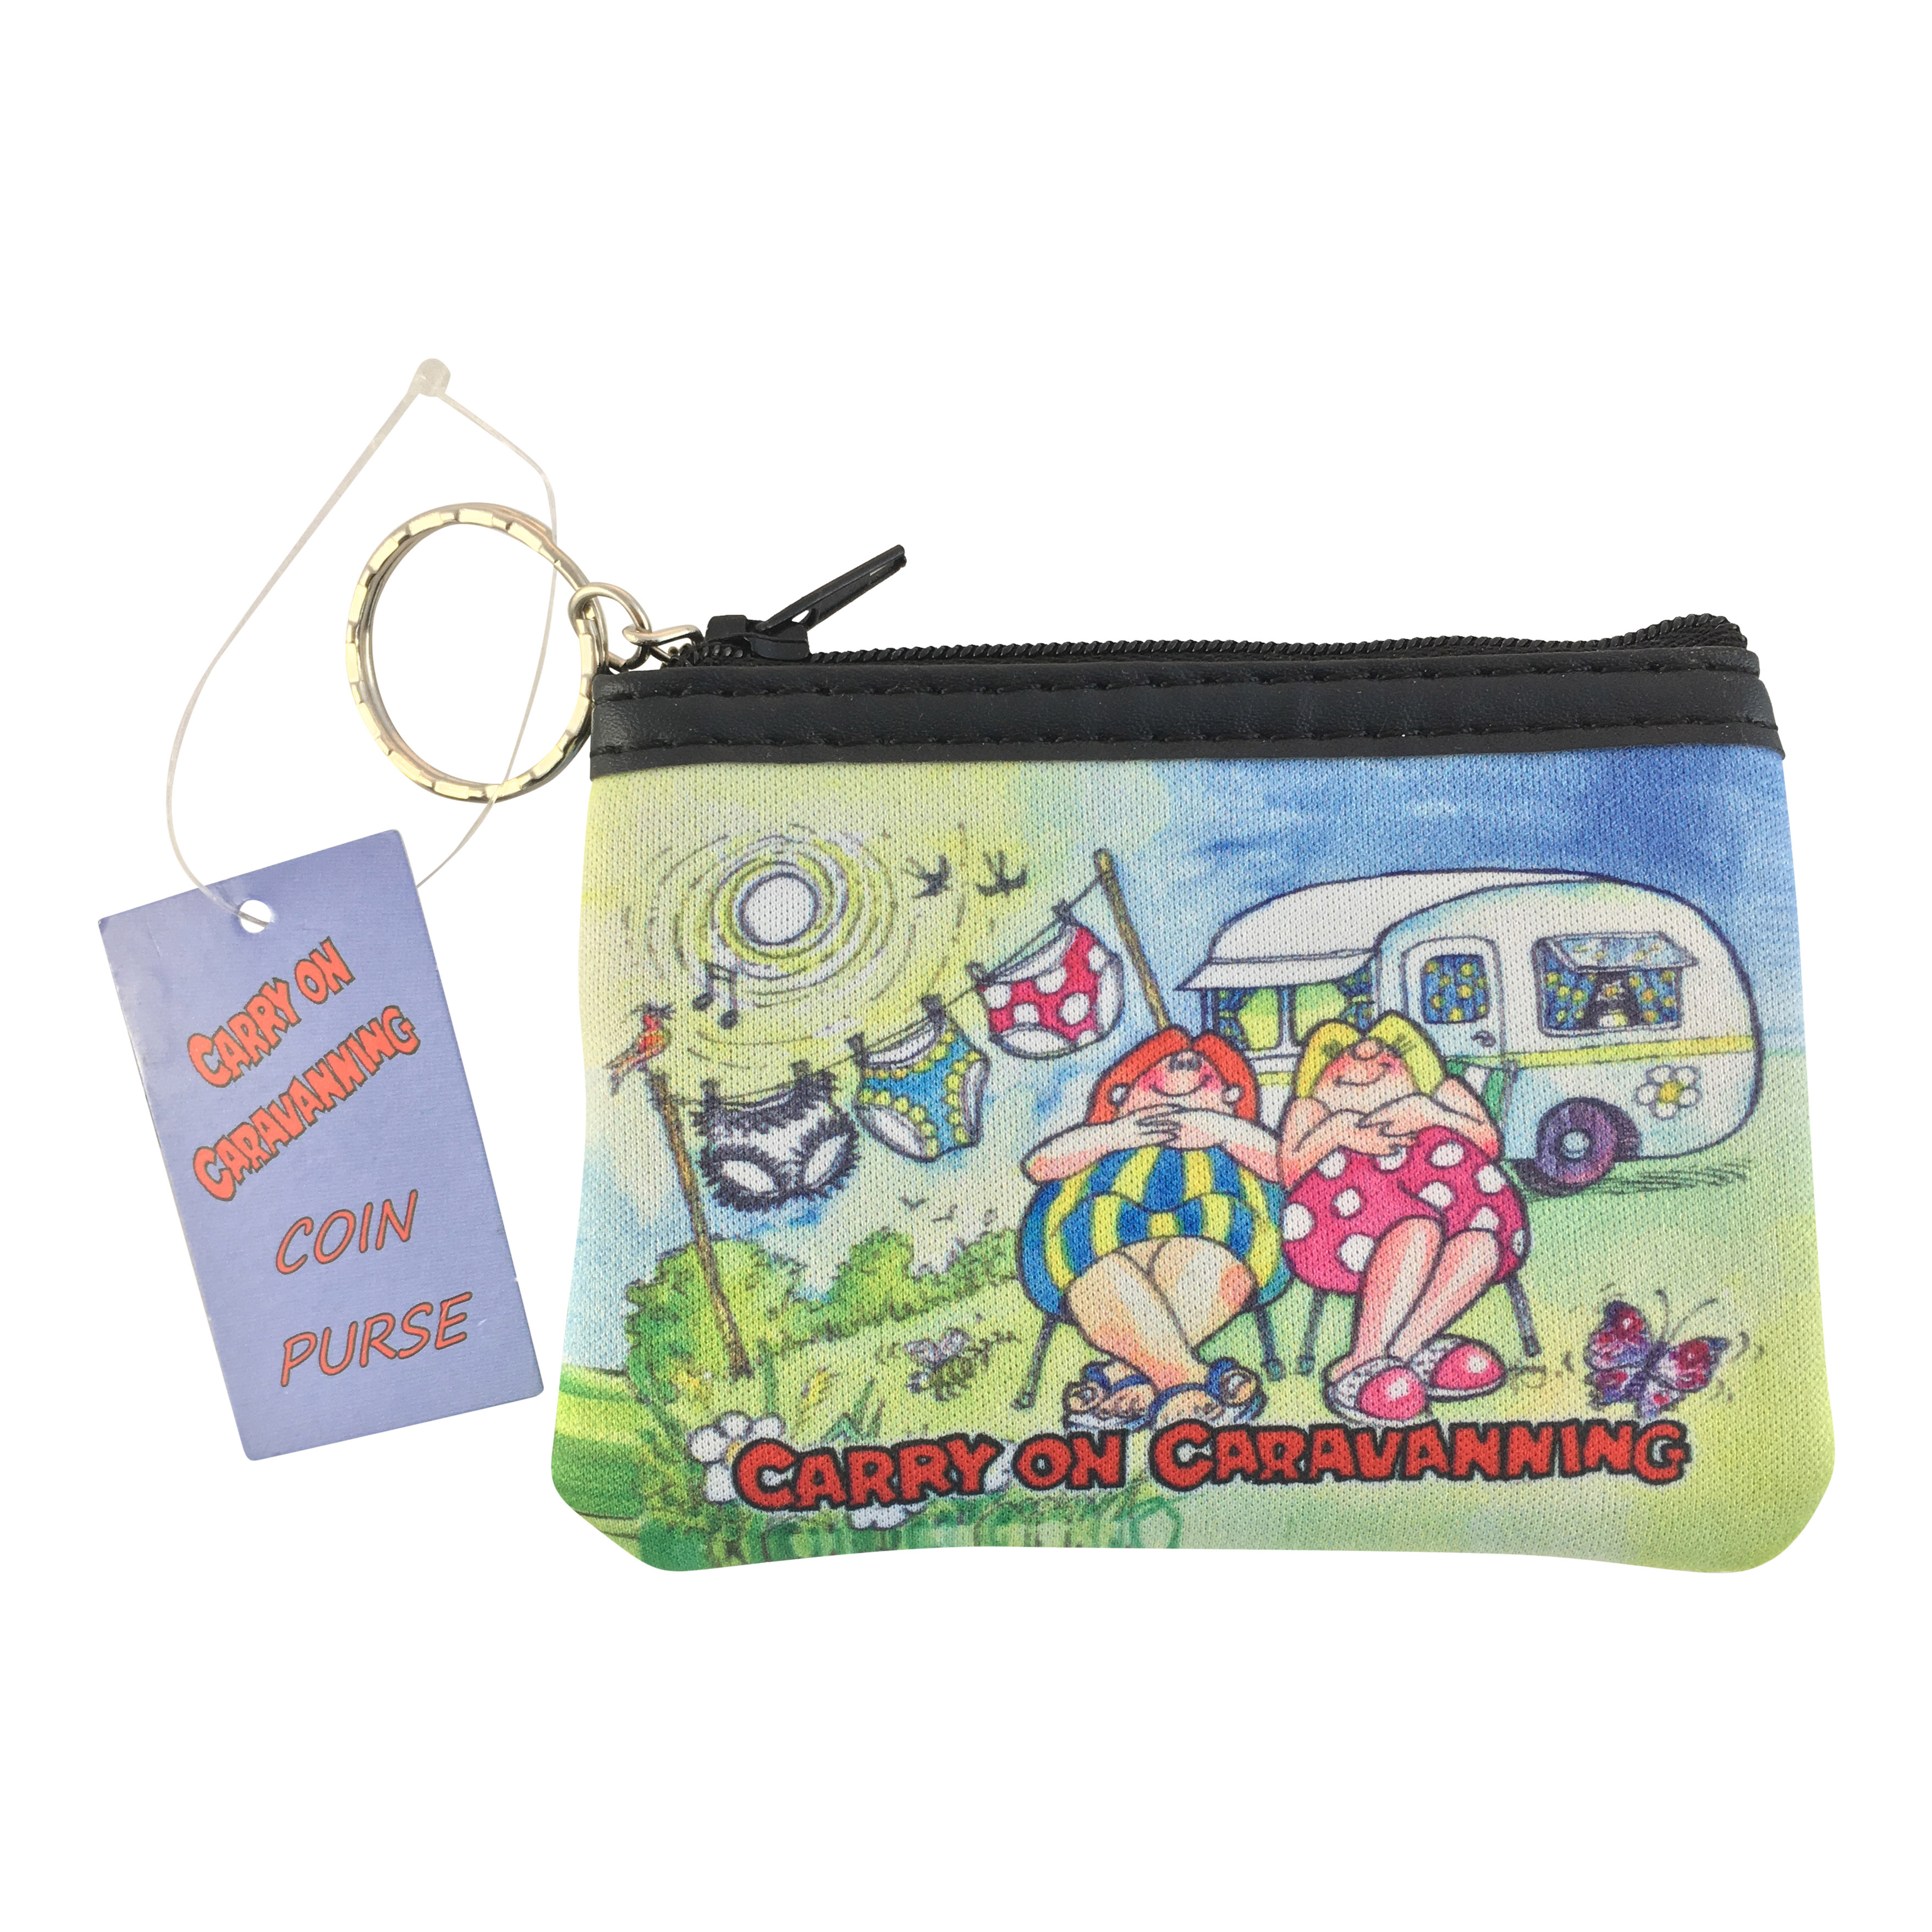 Carry on Caravanning 'Ladies' Purse